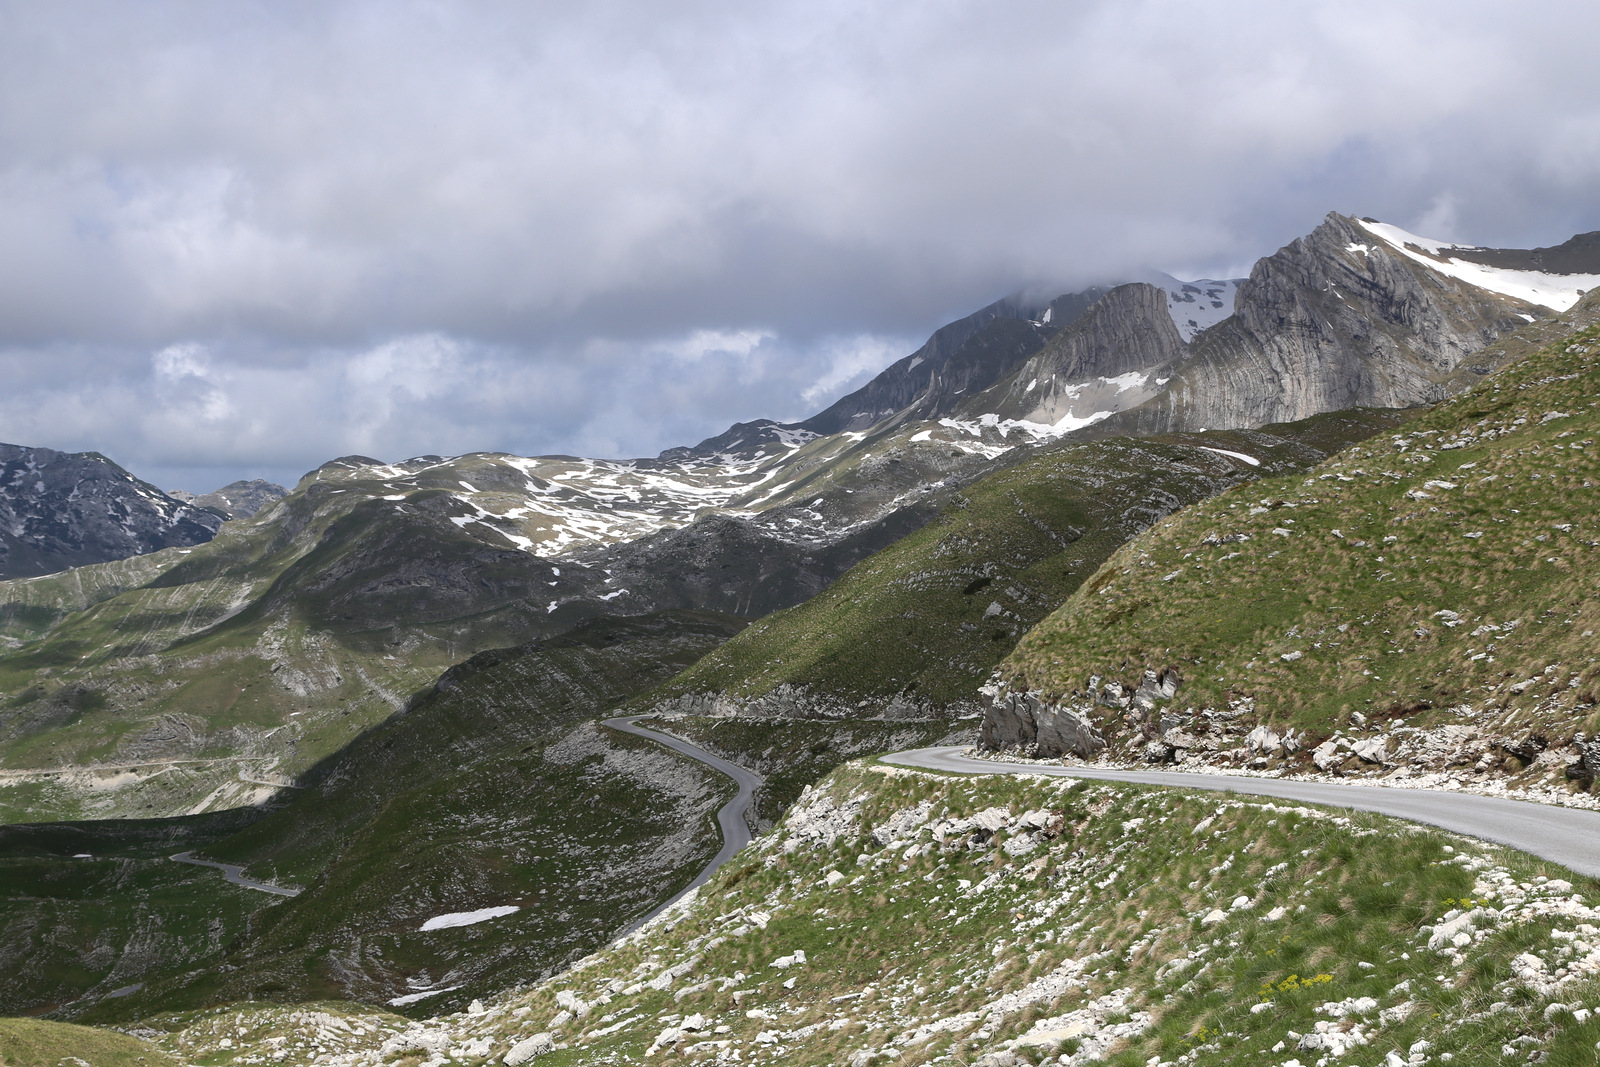 Durmitor, mountain road from Zabljak to Pluzine